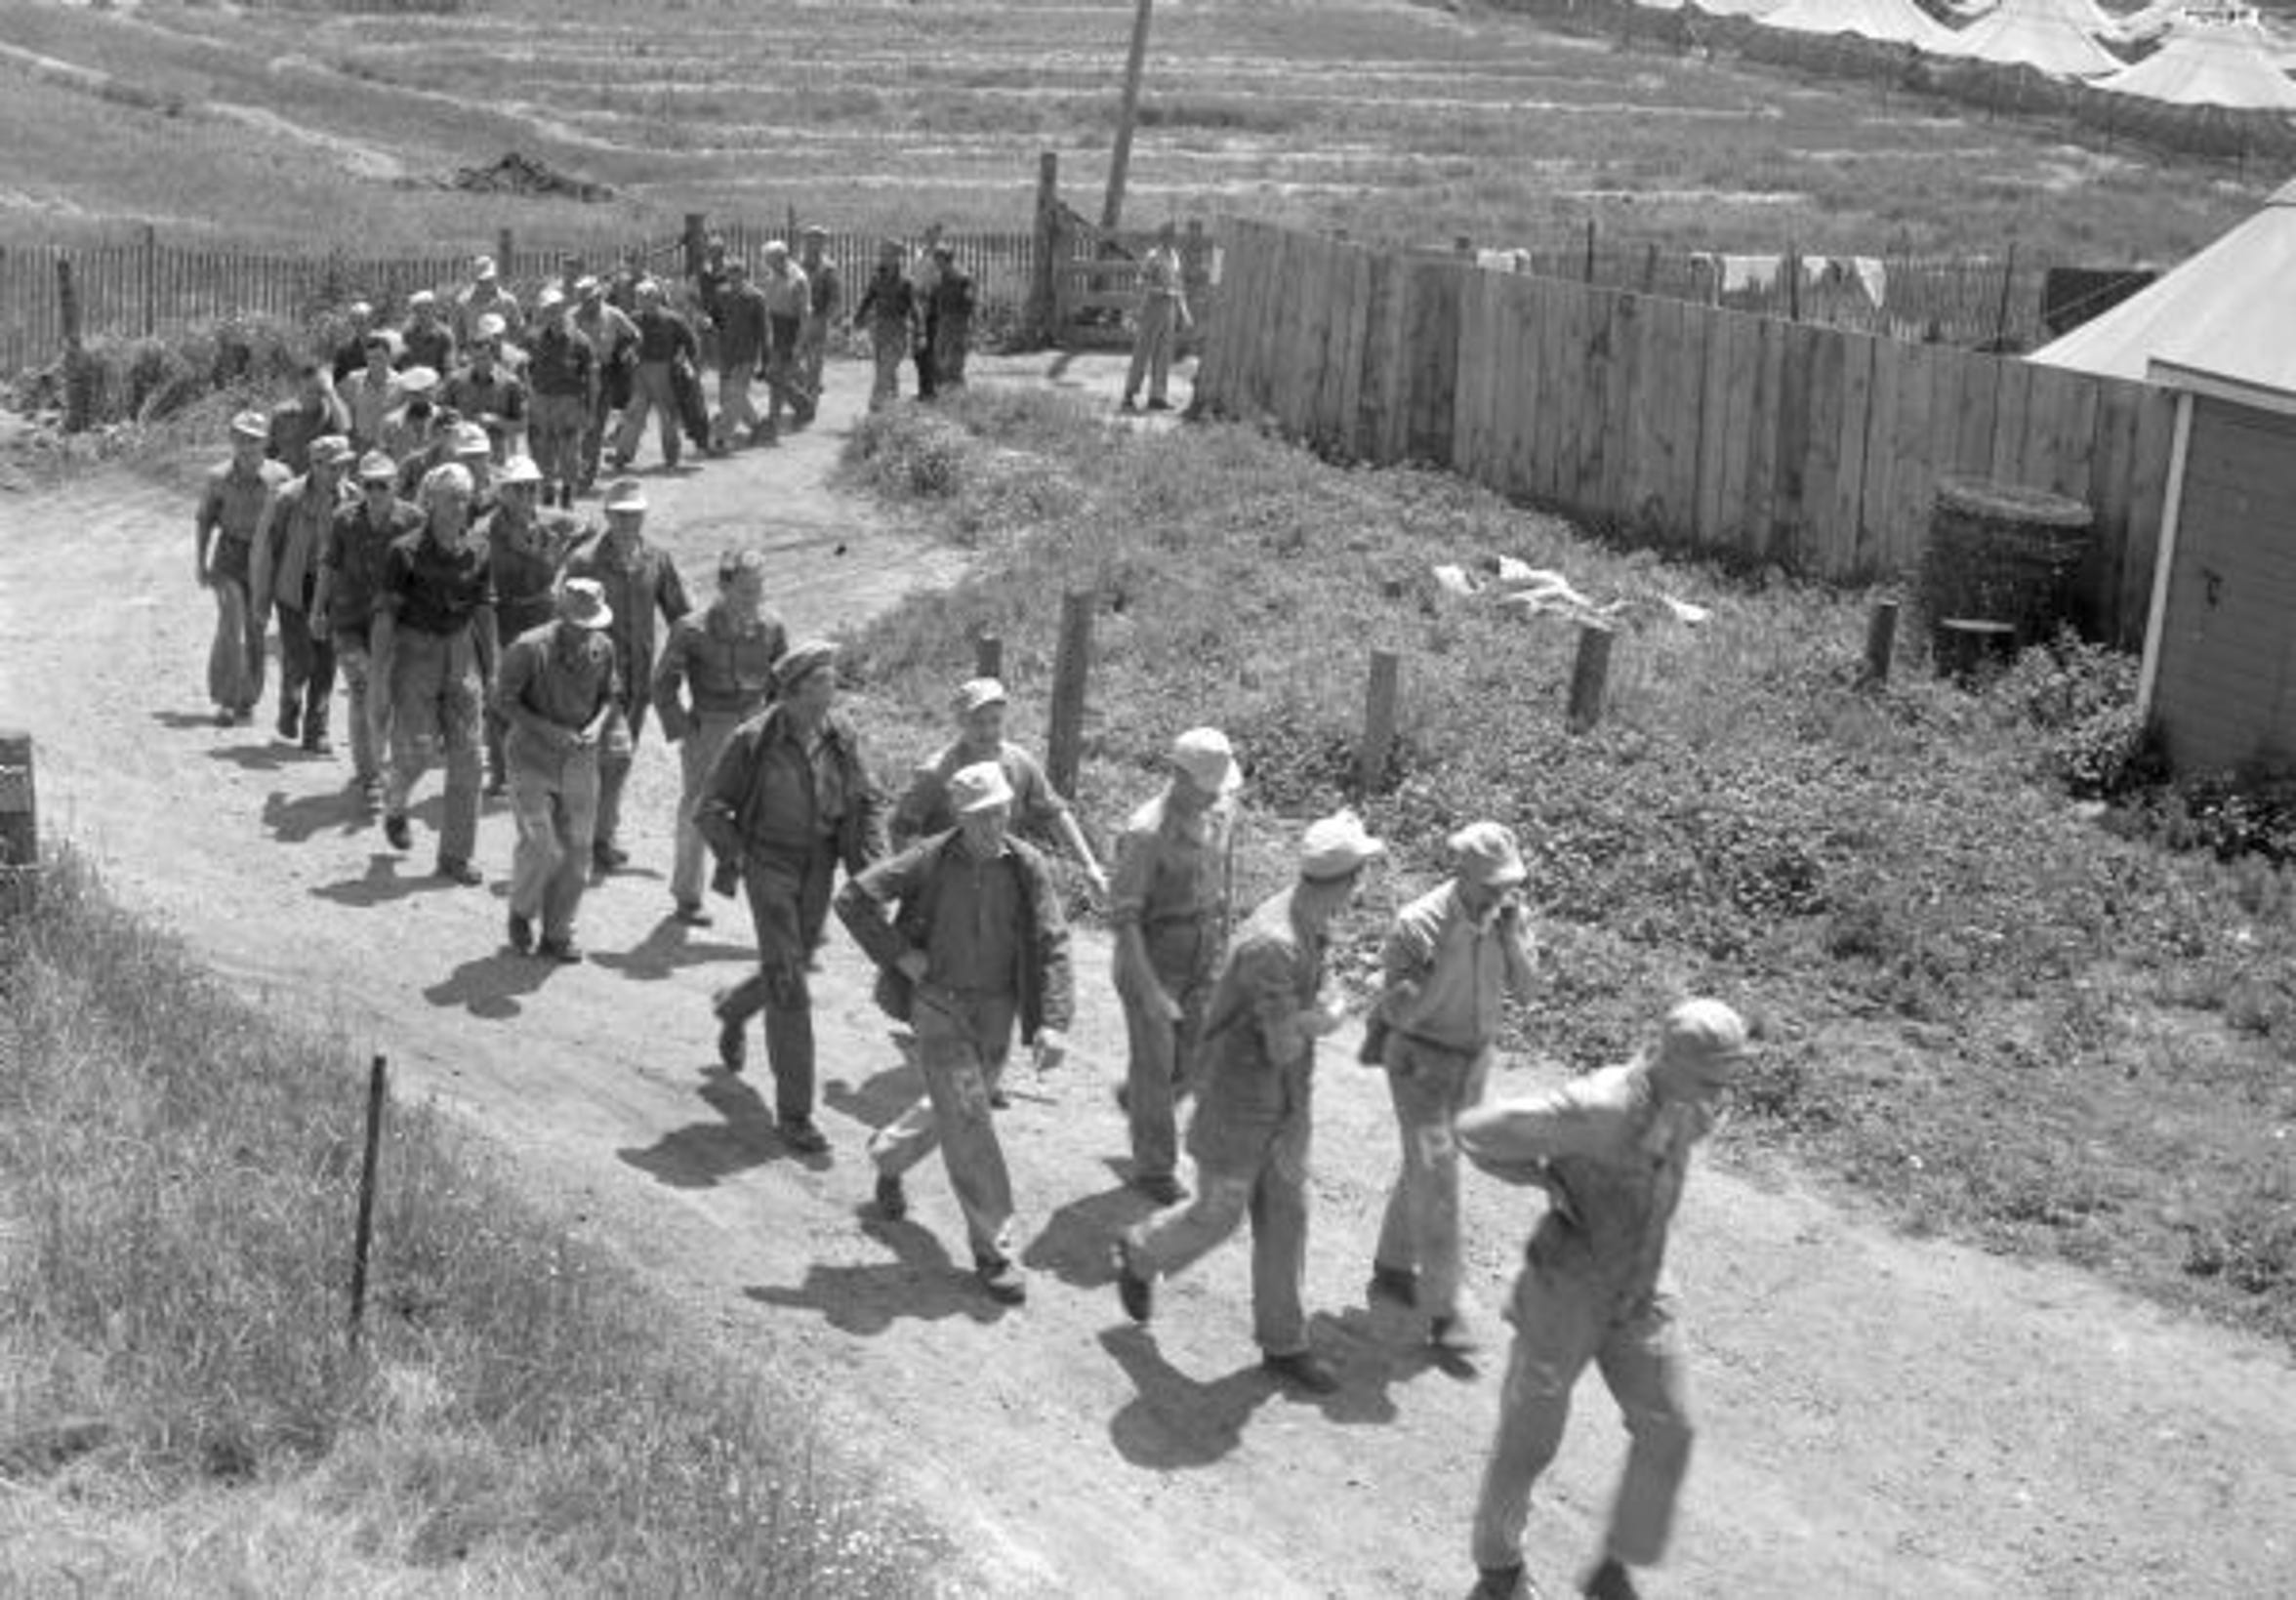 German POWs march to trucks in Columbus to go to work at canning company.